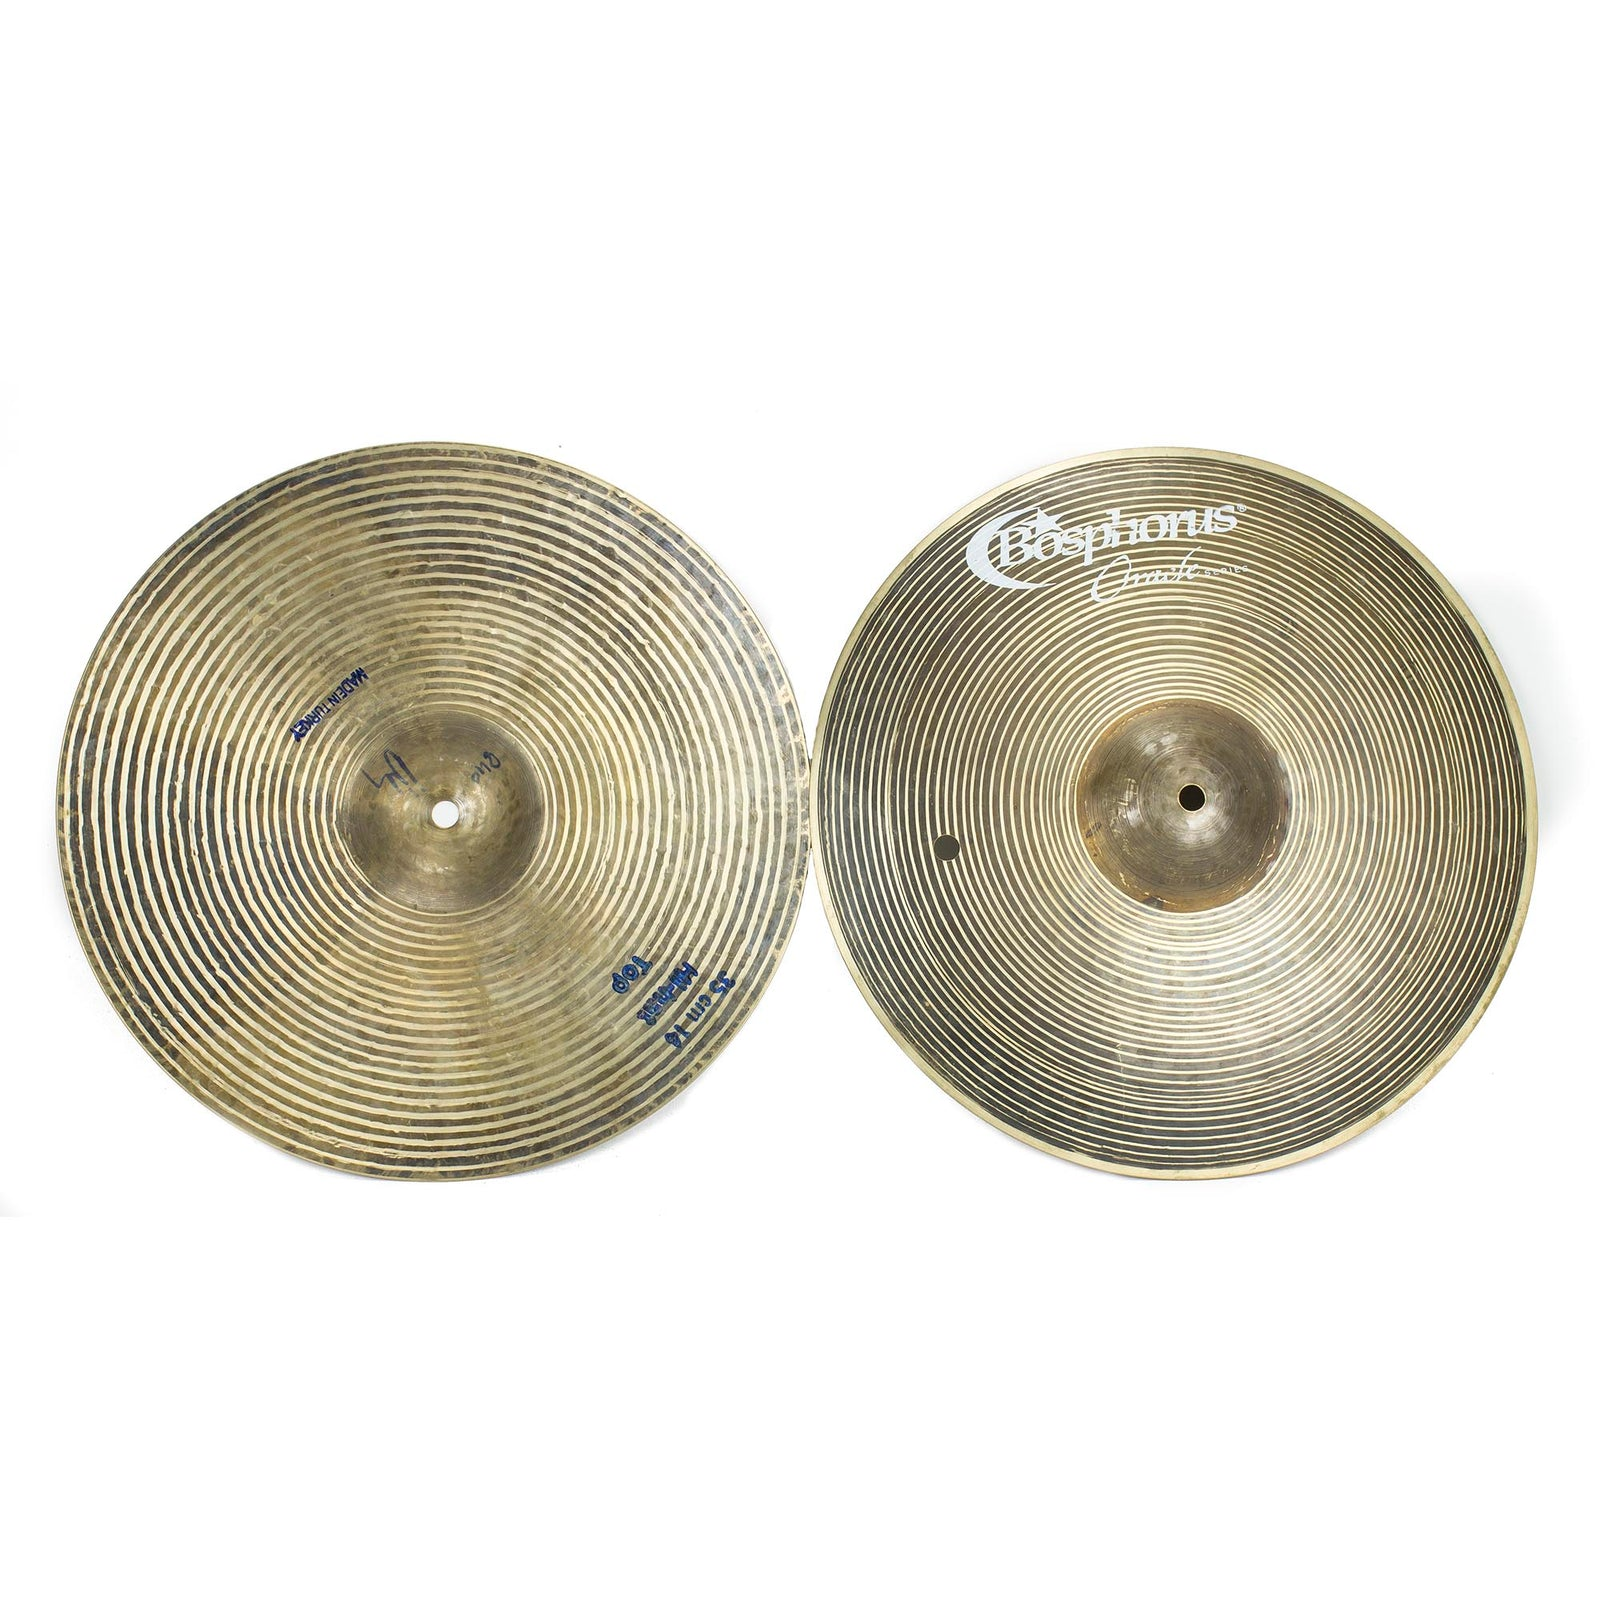 "Bosphorus 14"" Oracle Hi Hats 840/1066G - Used"